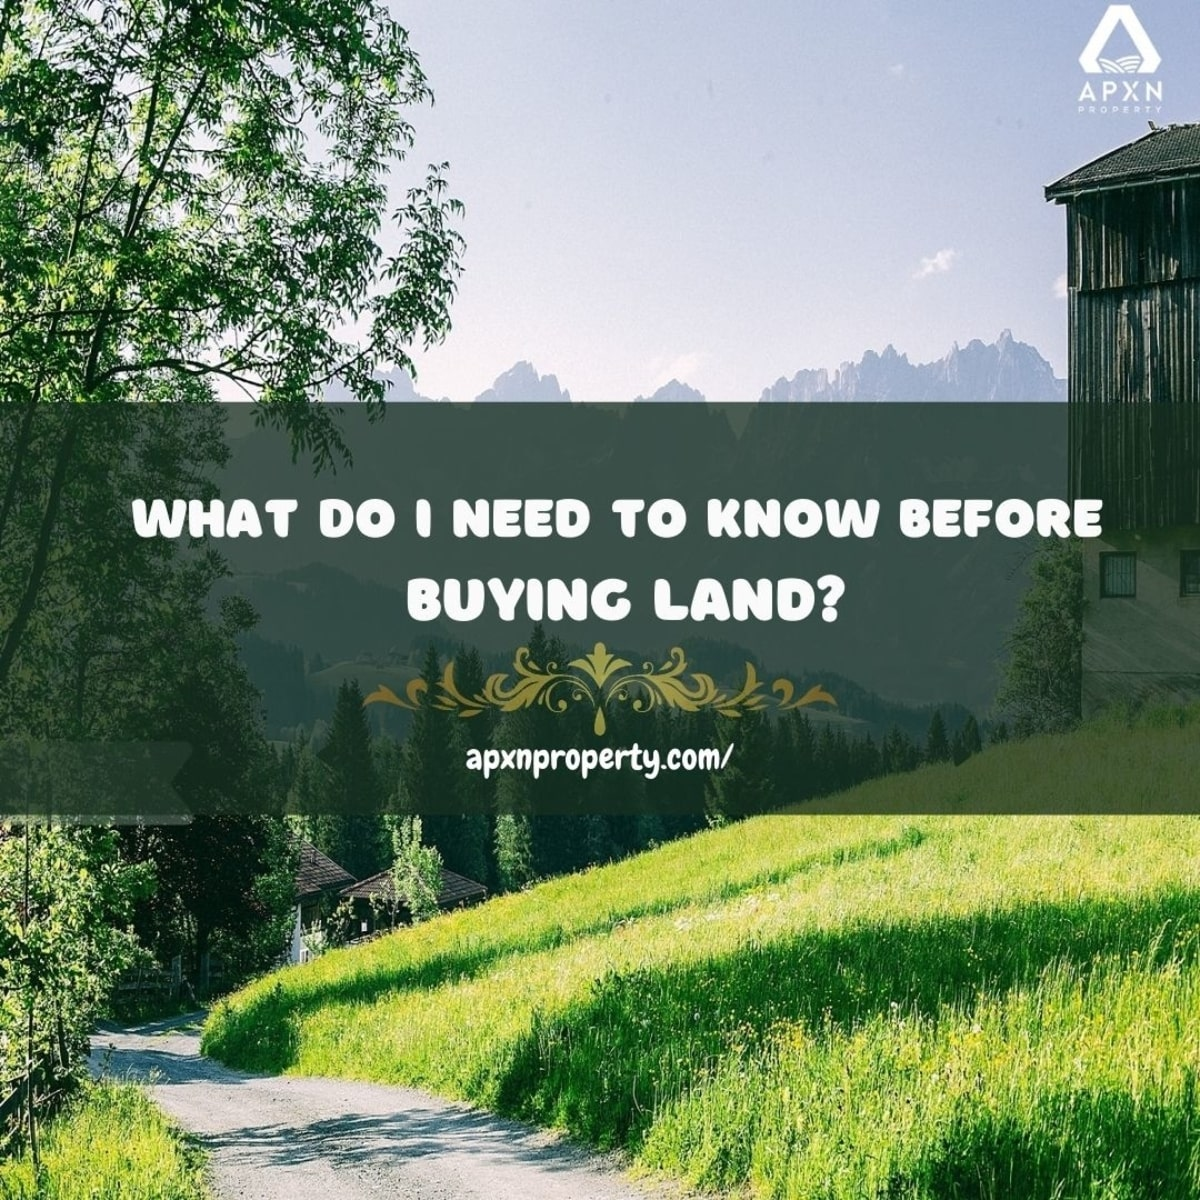 What do I need to before buying land?